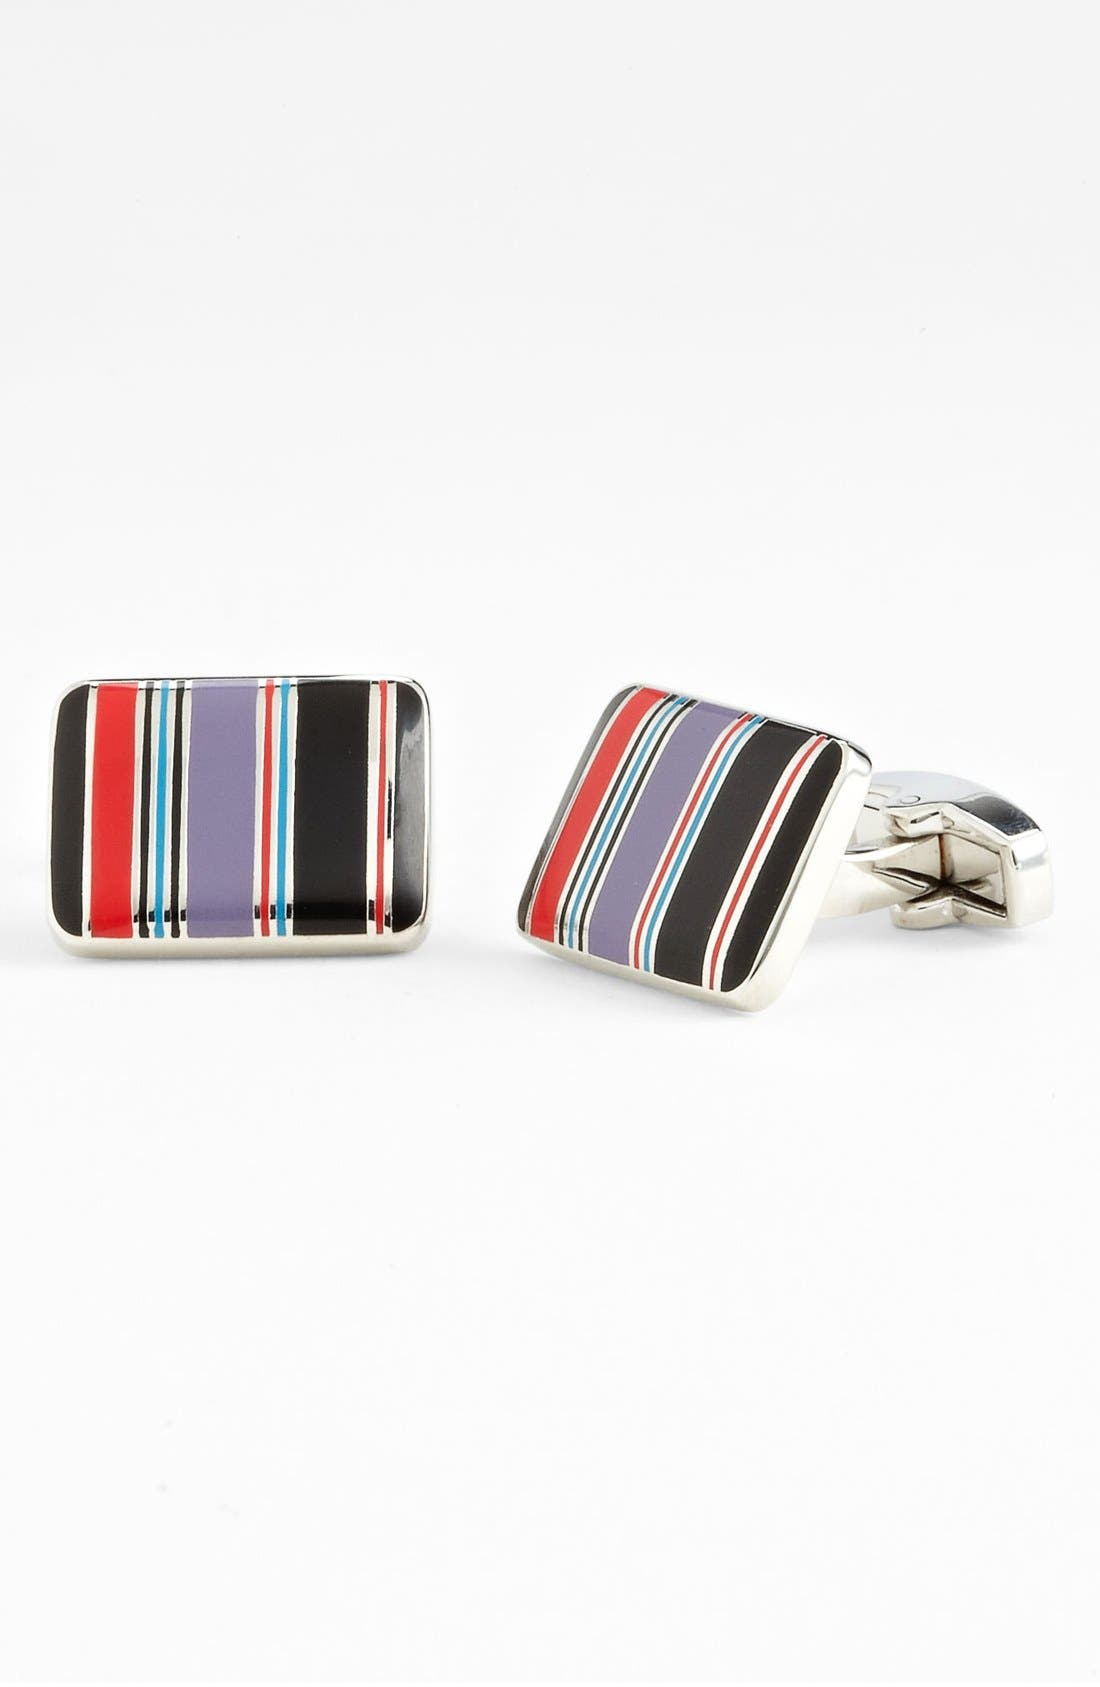 Main Image - Paul Smith Accessories Flash Stripe Cuff Links